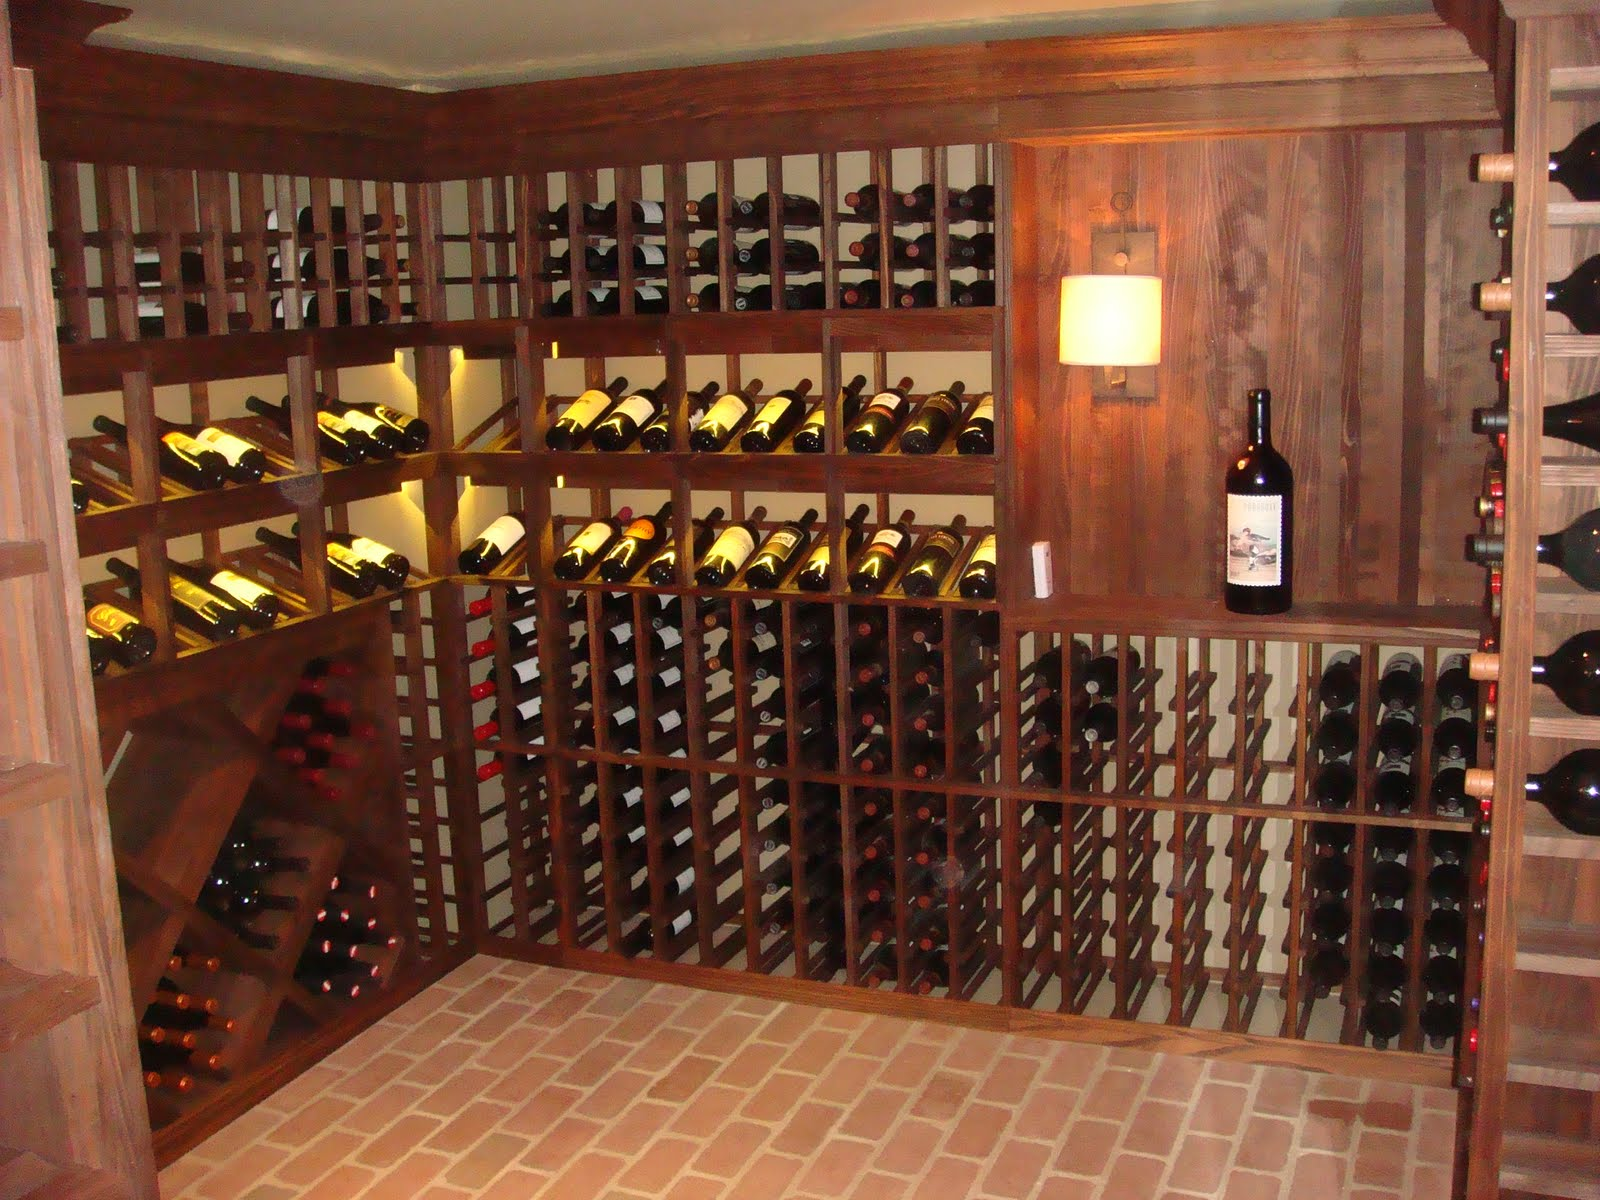 Charlotte home remodeling company wine cellars basement renovations and kitchen remodeling - Small space wine racks design ...